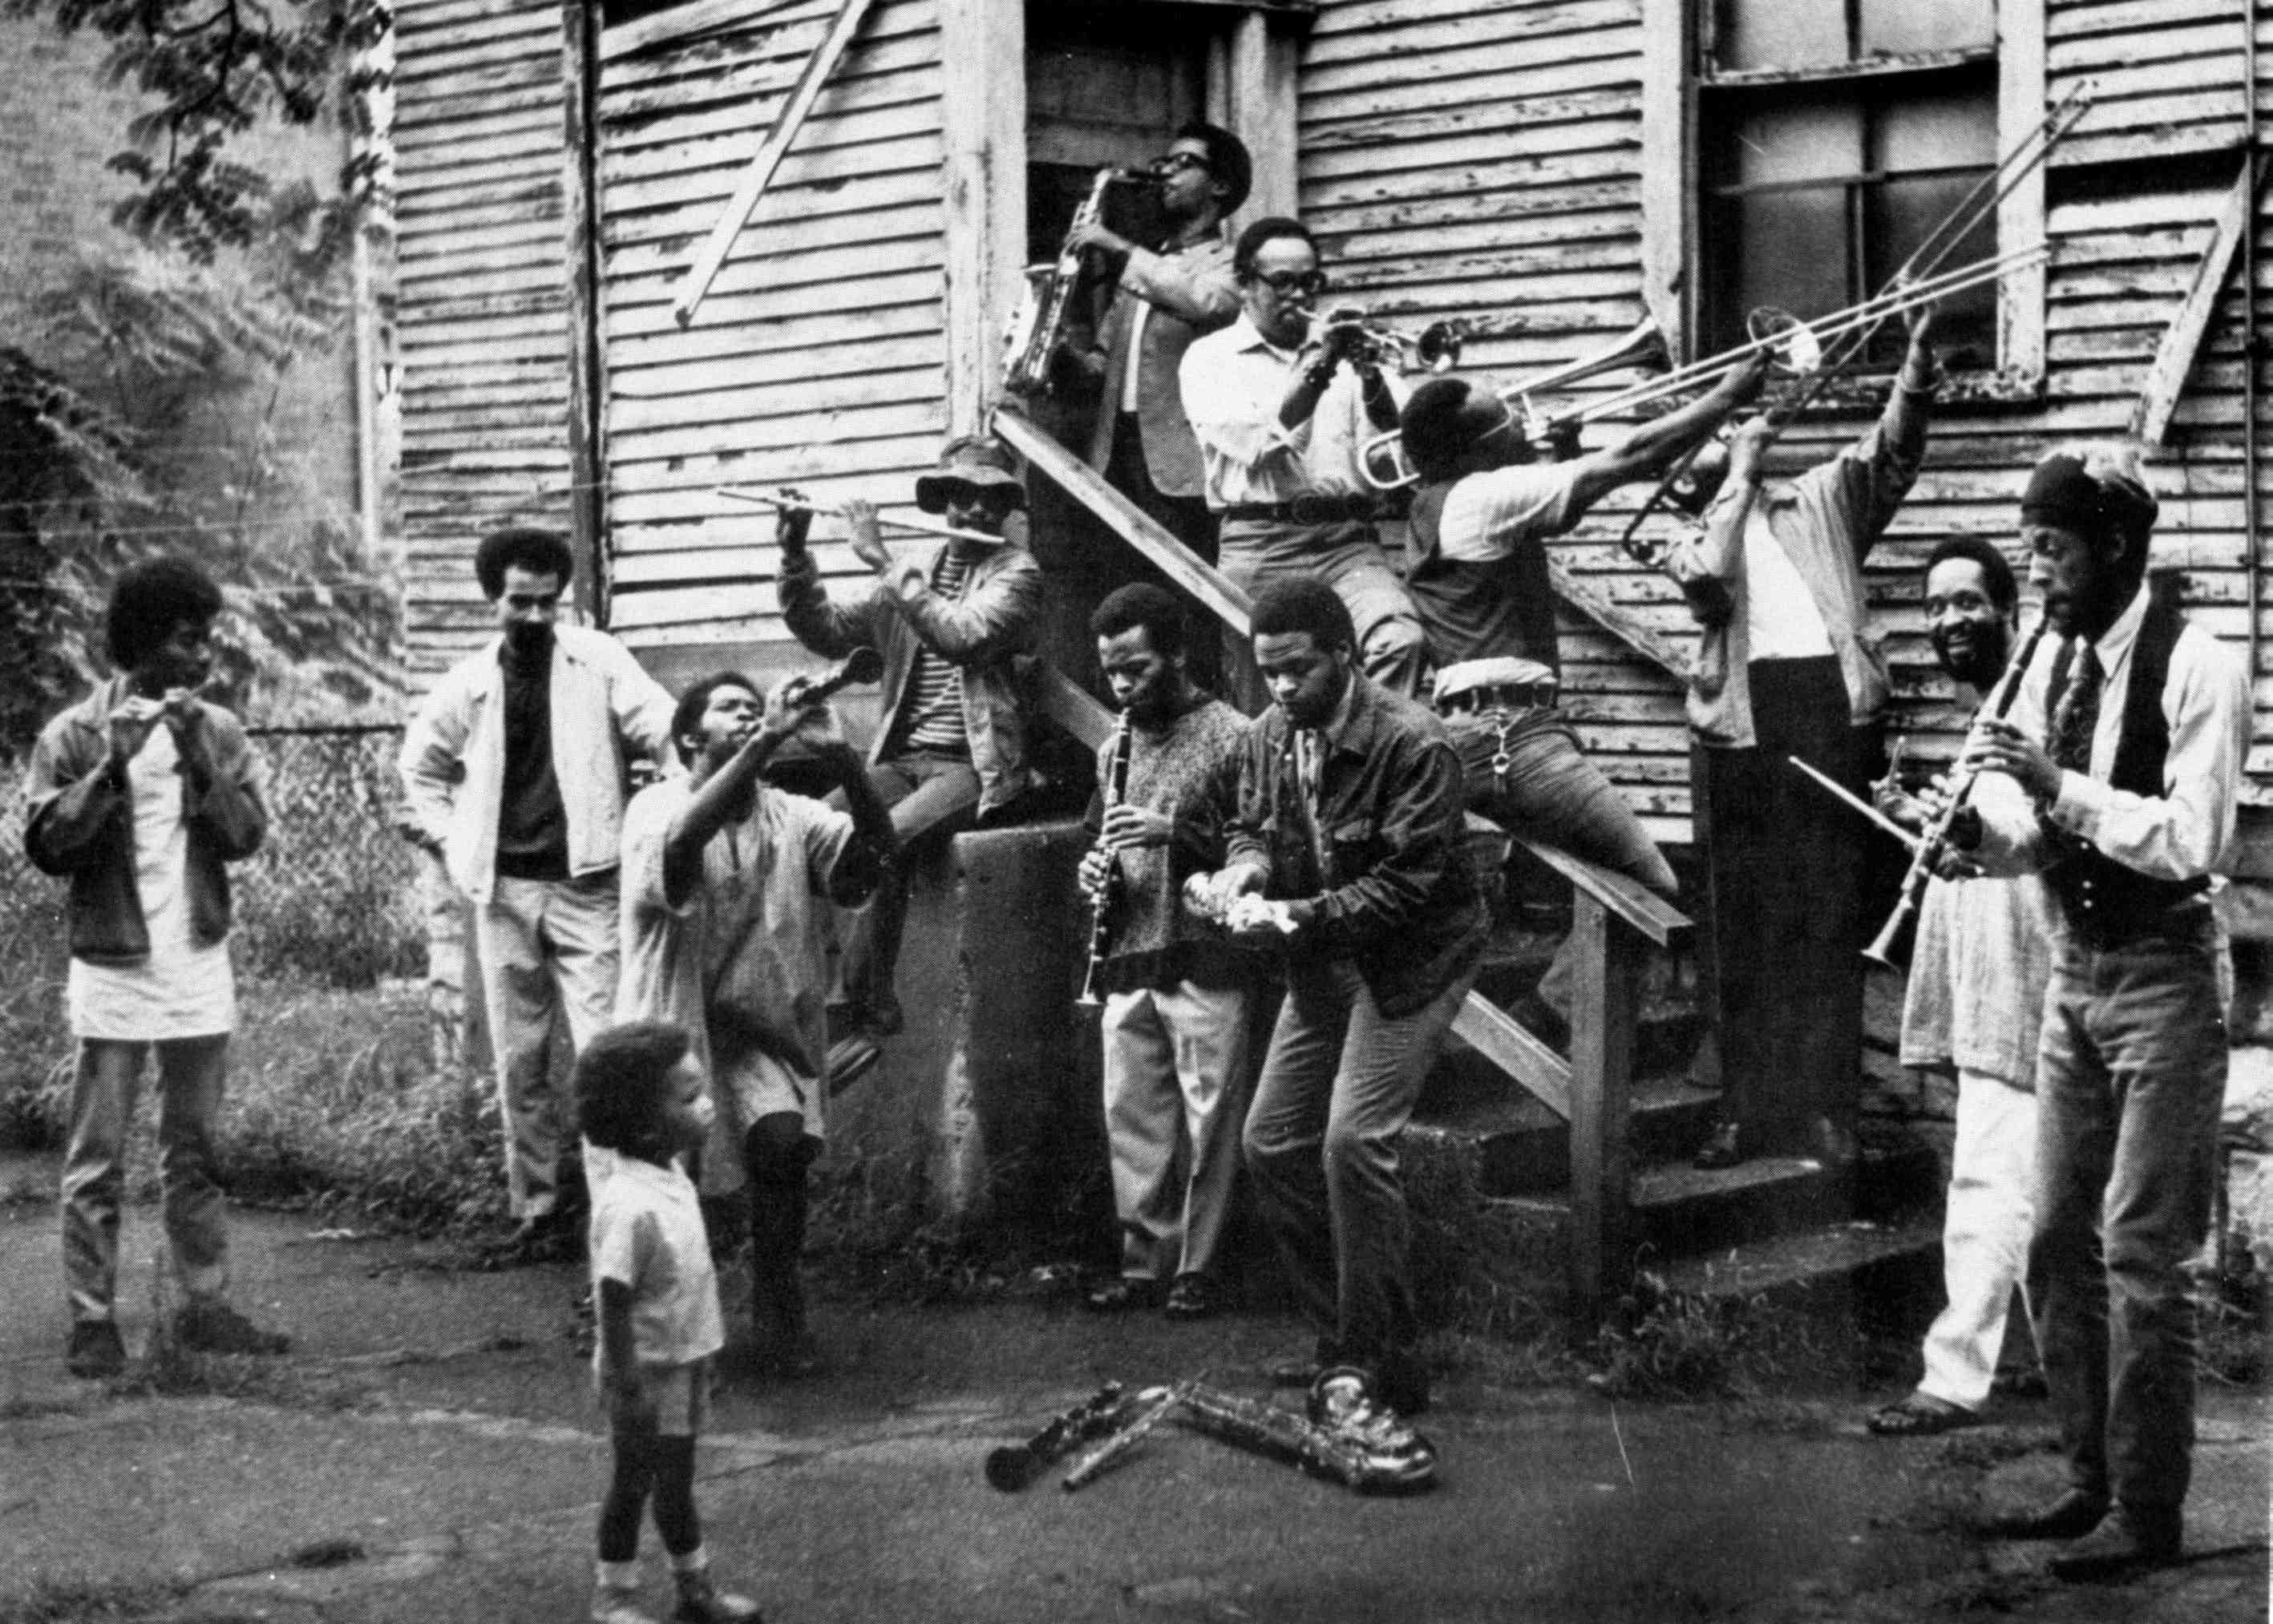 A black and white photograph of a crowd of men joyously playing all kinds of musical instruments on a porch while a young boy looks on